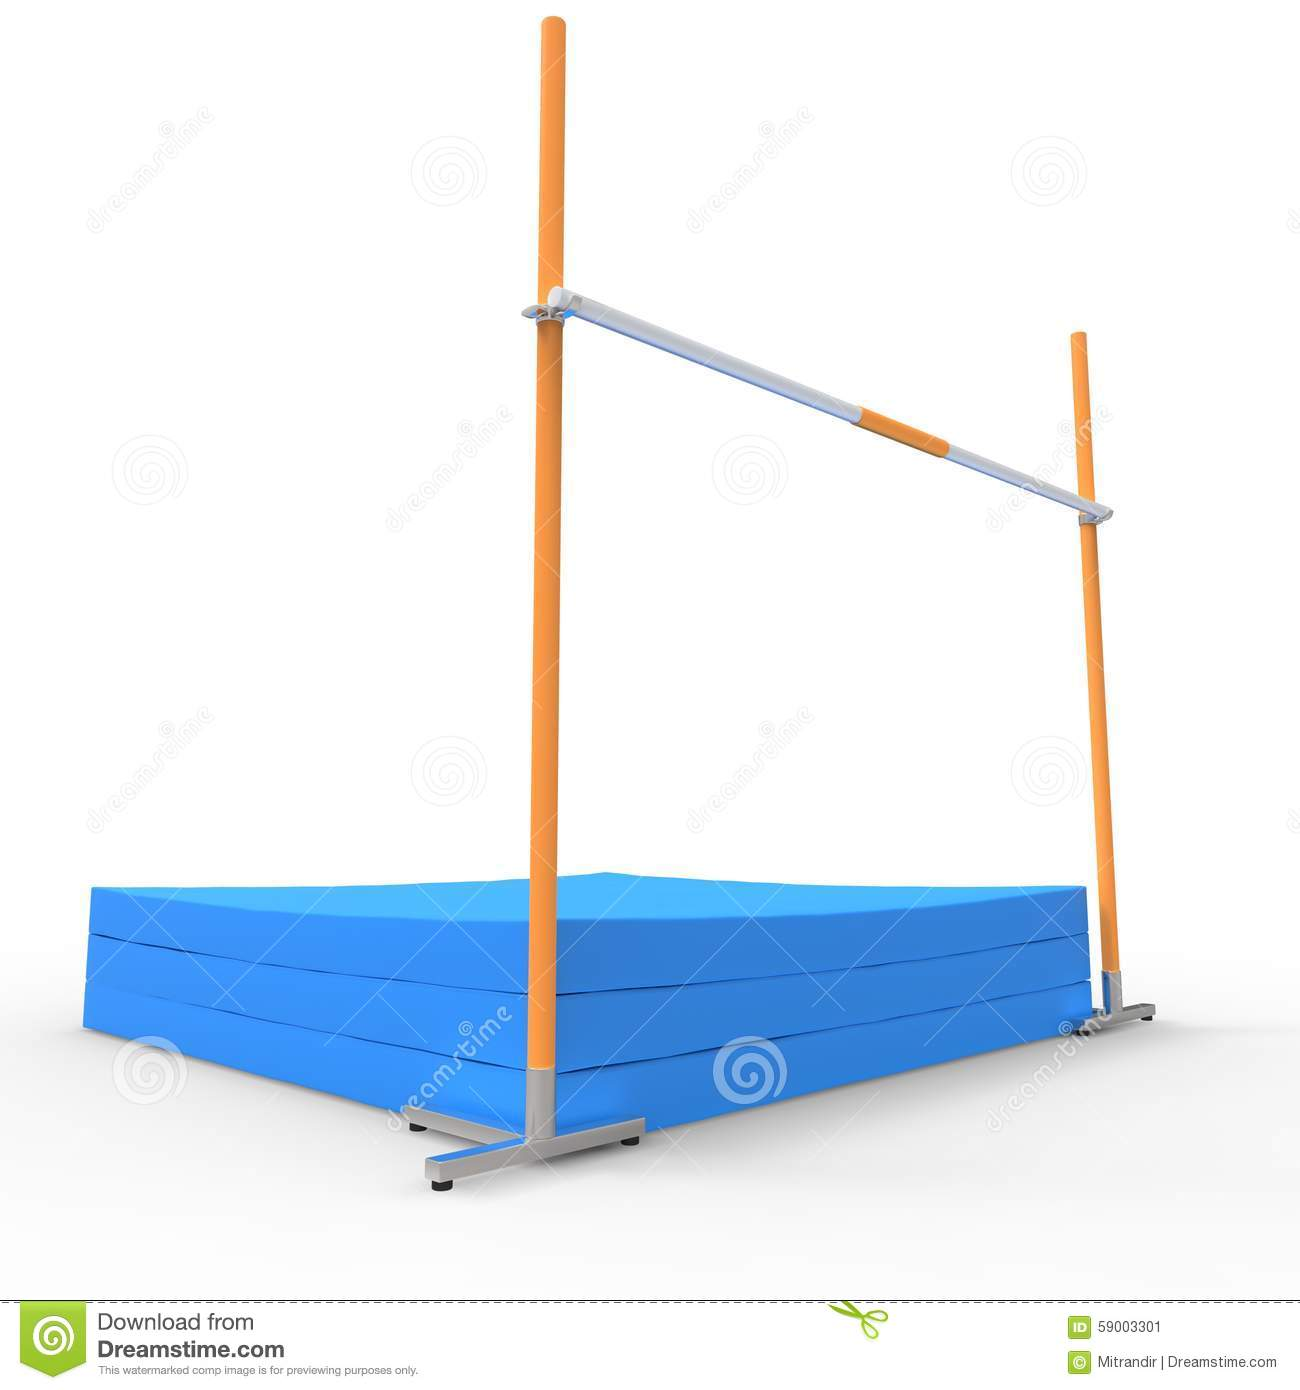 high jump clipart - photo #46